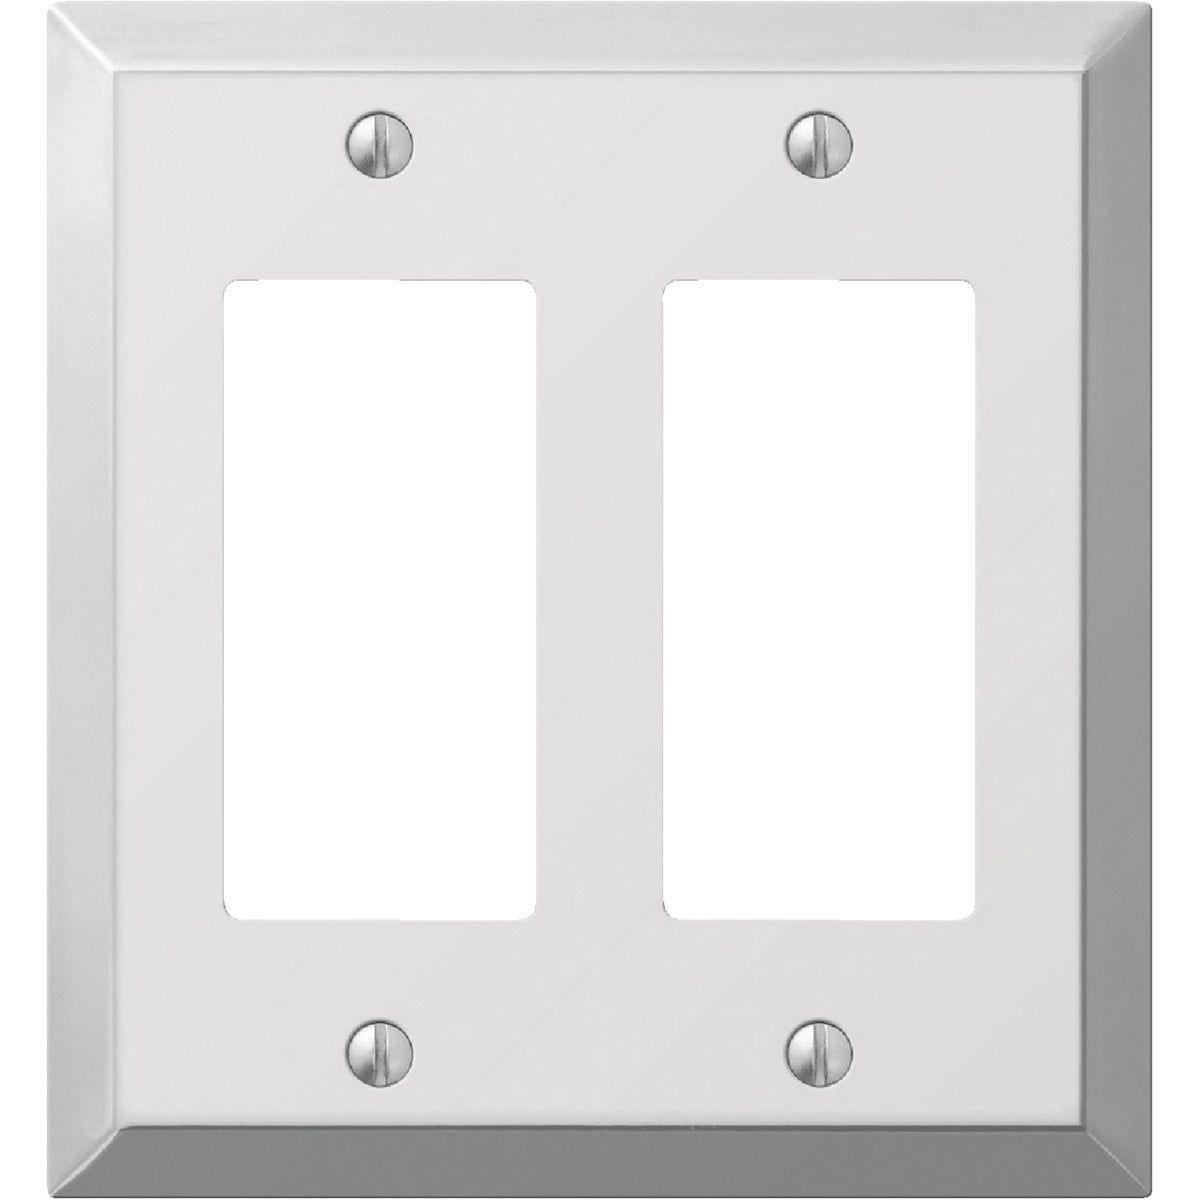 2RCKR PCHRM WALLPLATE - 9CS127 by Jackson Deerfield Mf